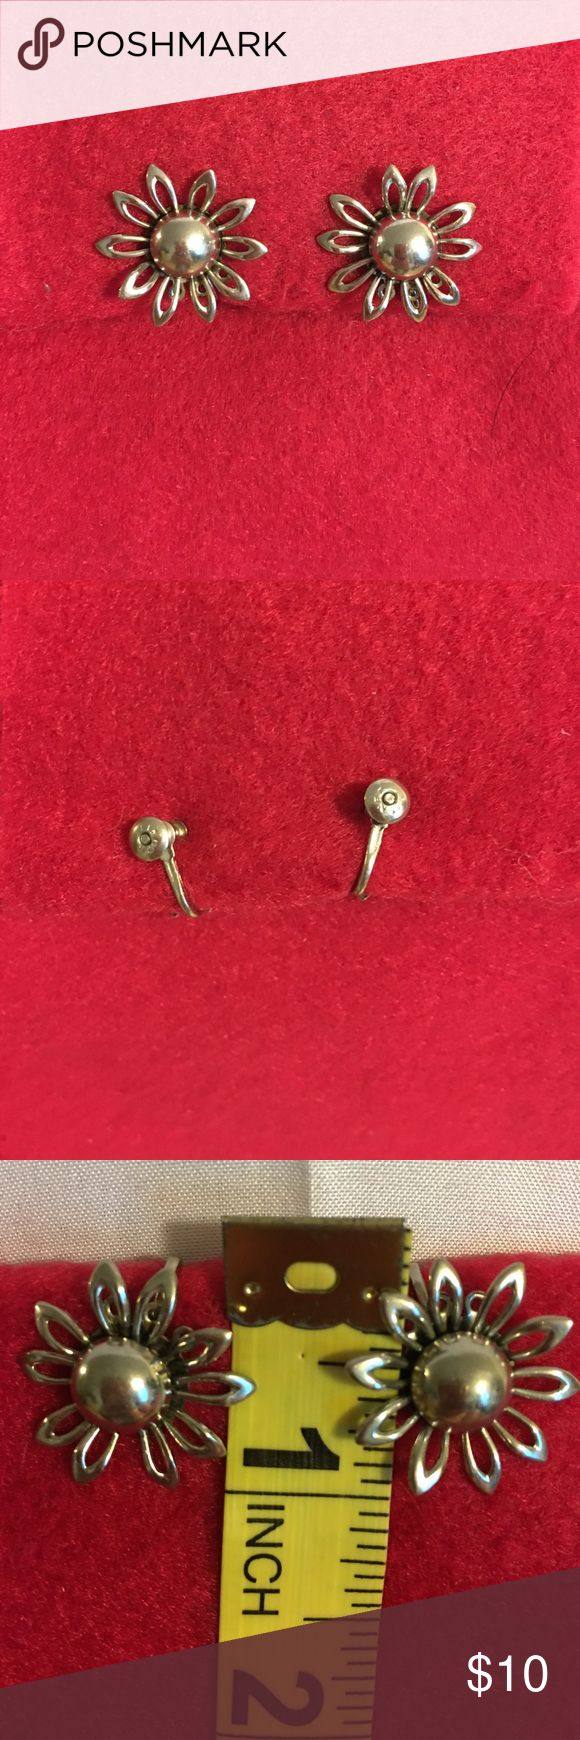 LISNER SIGNED FLORAL EARRINGS Dainty little flowers. Vintage signed LISNER silver toned earrings. These are screw backs. I believe that originally had pieces that dangled but they are cute as button as is. Vintage Jewelry Earrings